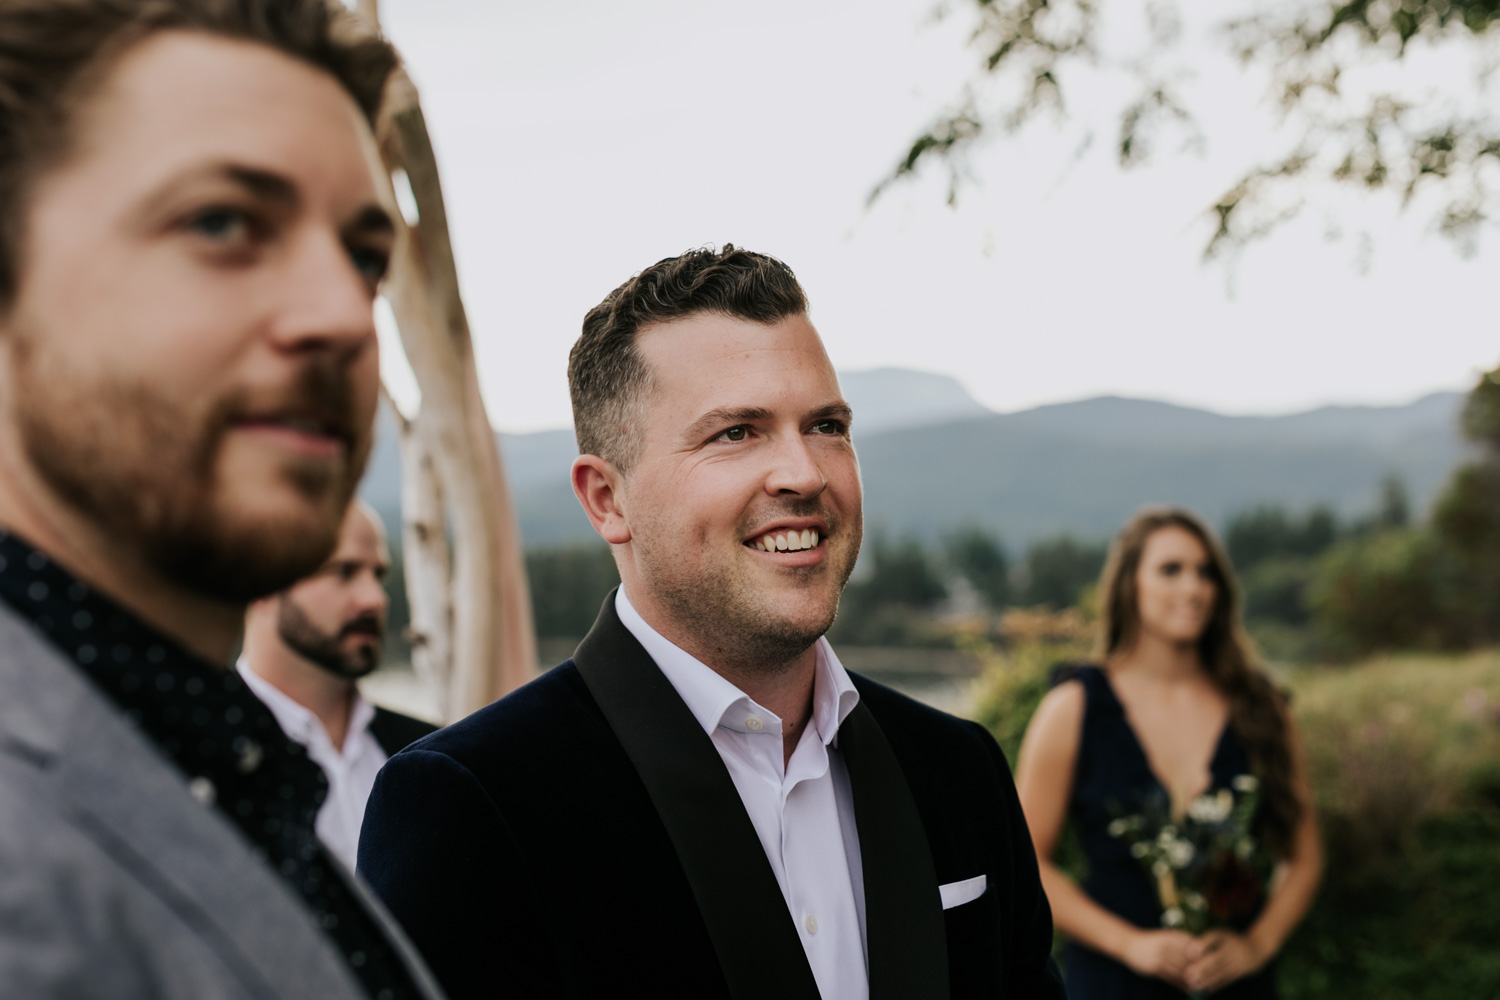 Groom's happy reaction as he watches his soon to be wife walk down the aisle towards him